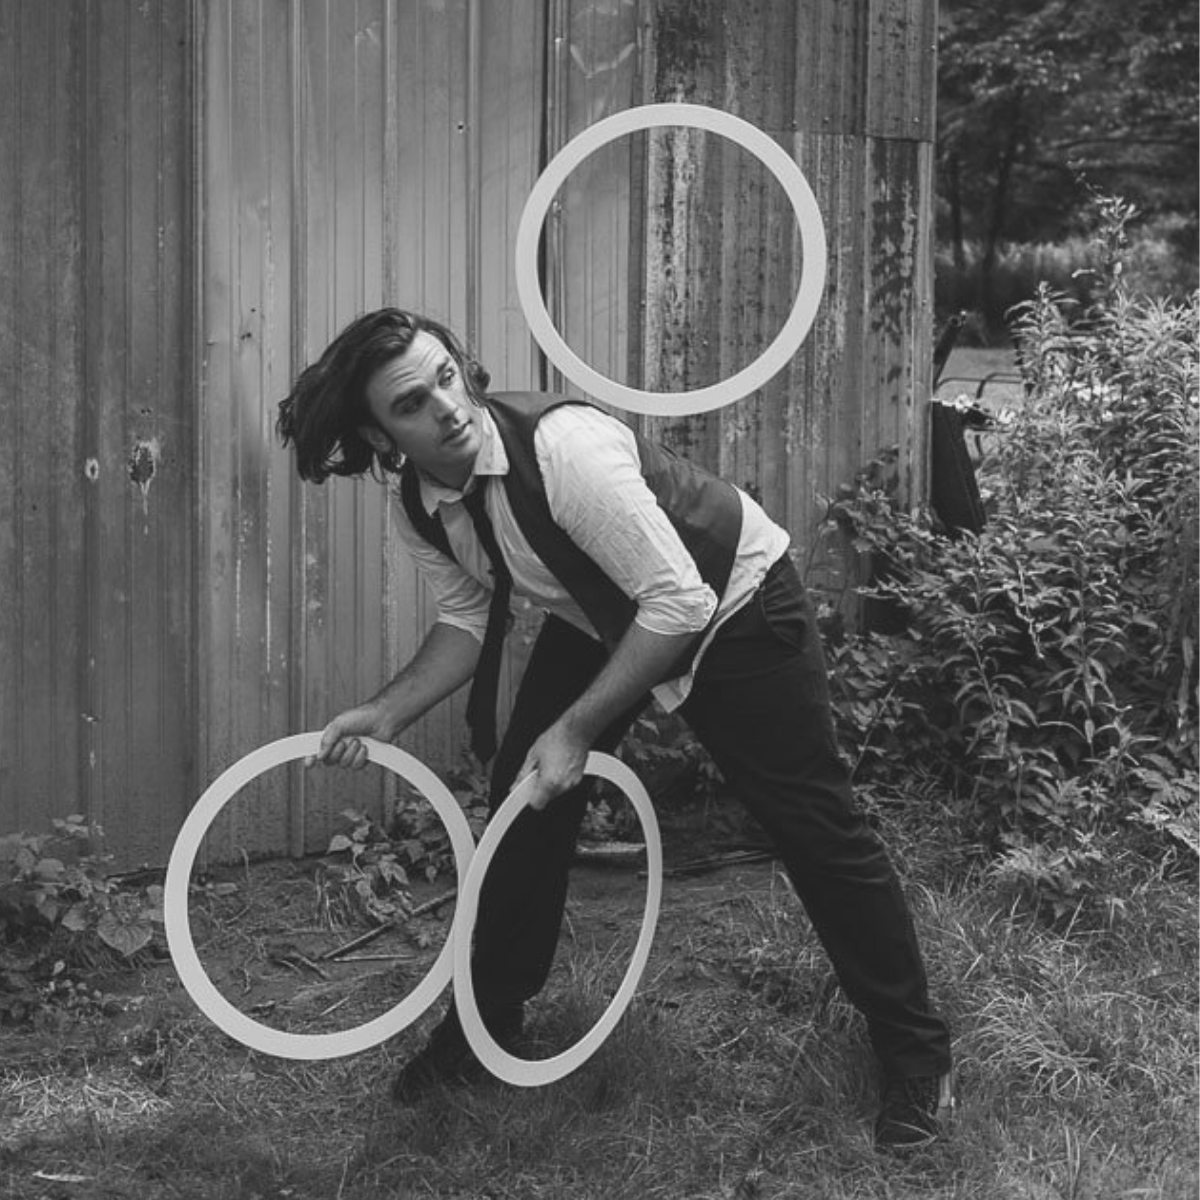 Performance   Thom Wall - Thom Wall is a juggler and variety entertainer based in Saint Louis, Missouri. Wall is known for his avant-garde performance style and is one of the last gentleman jugglers performing in the world today.